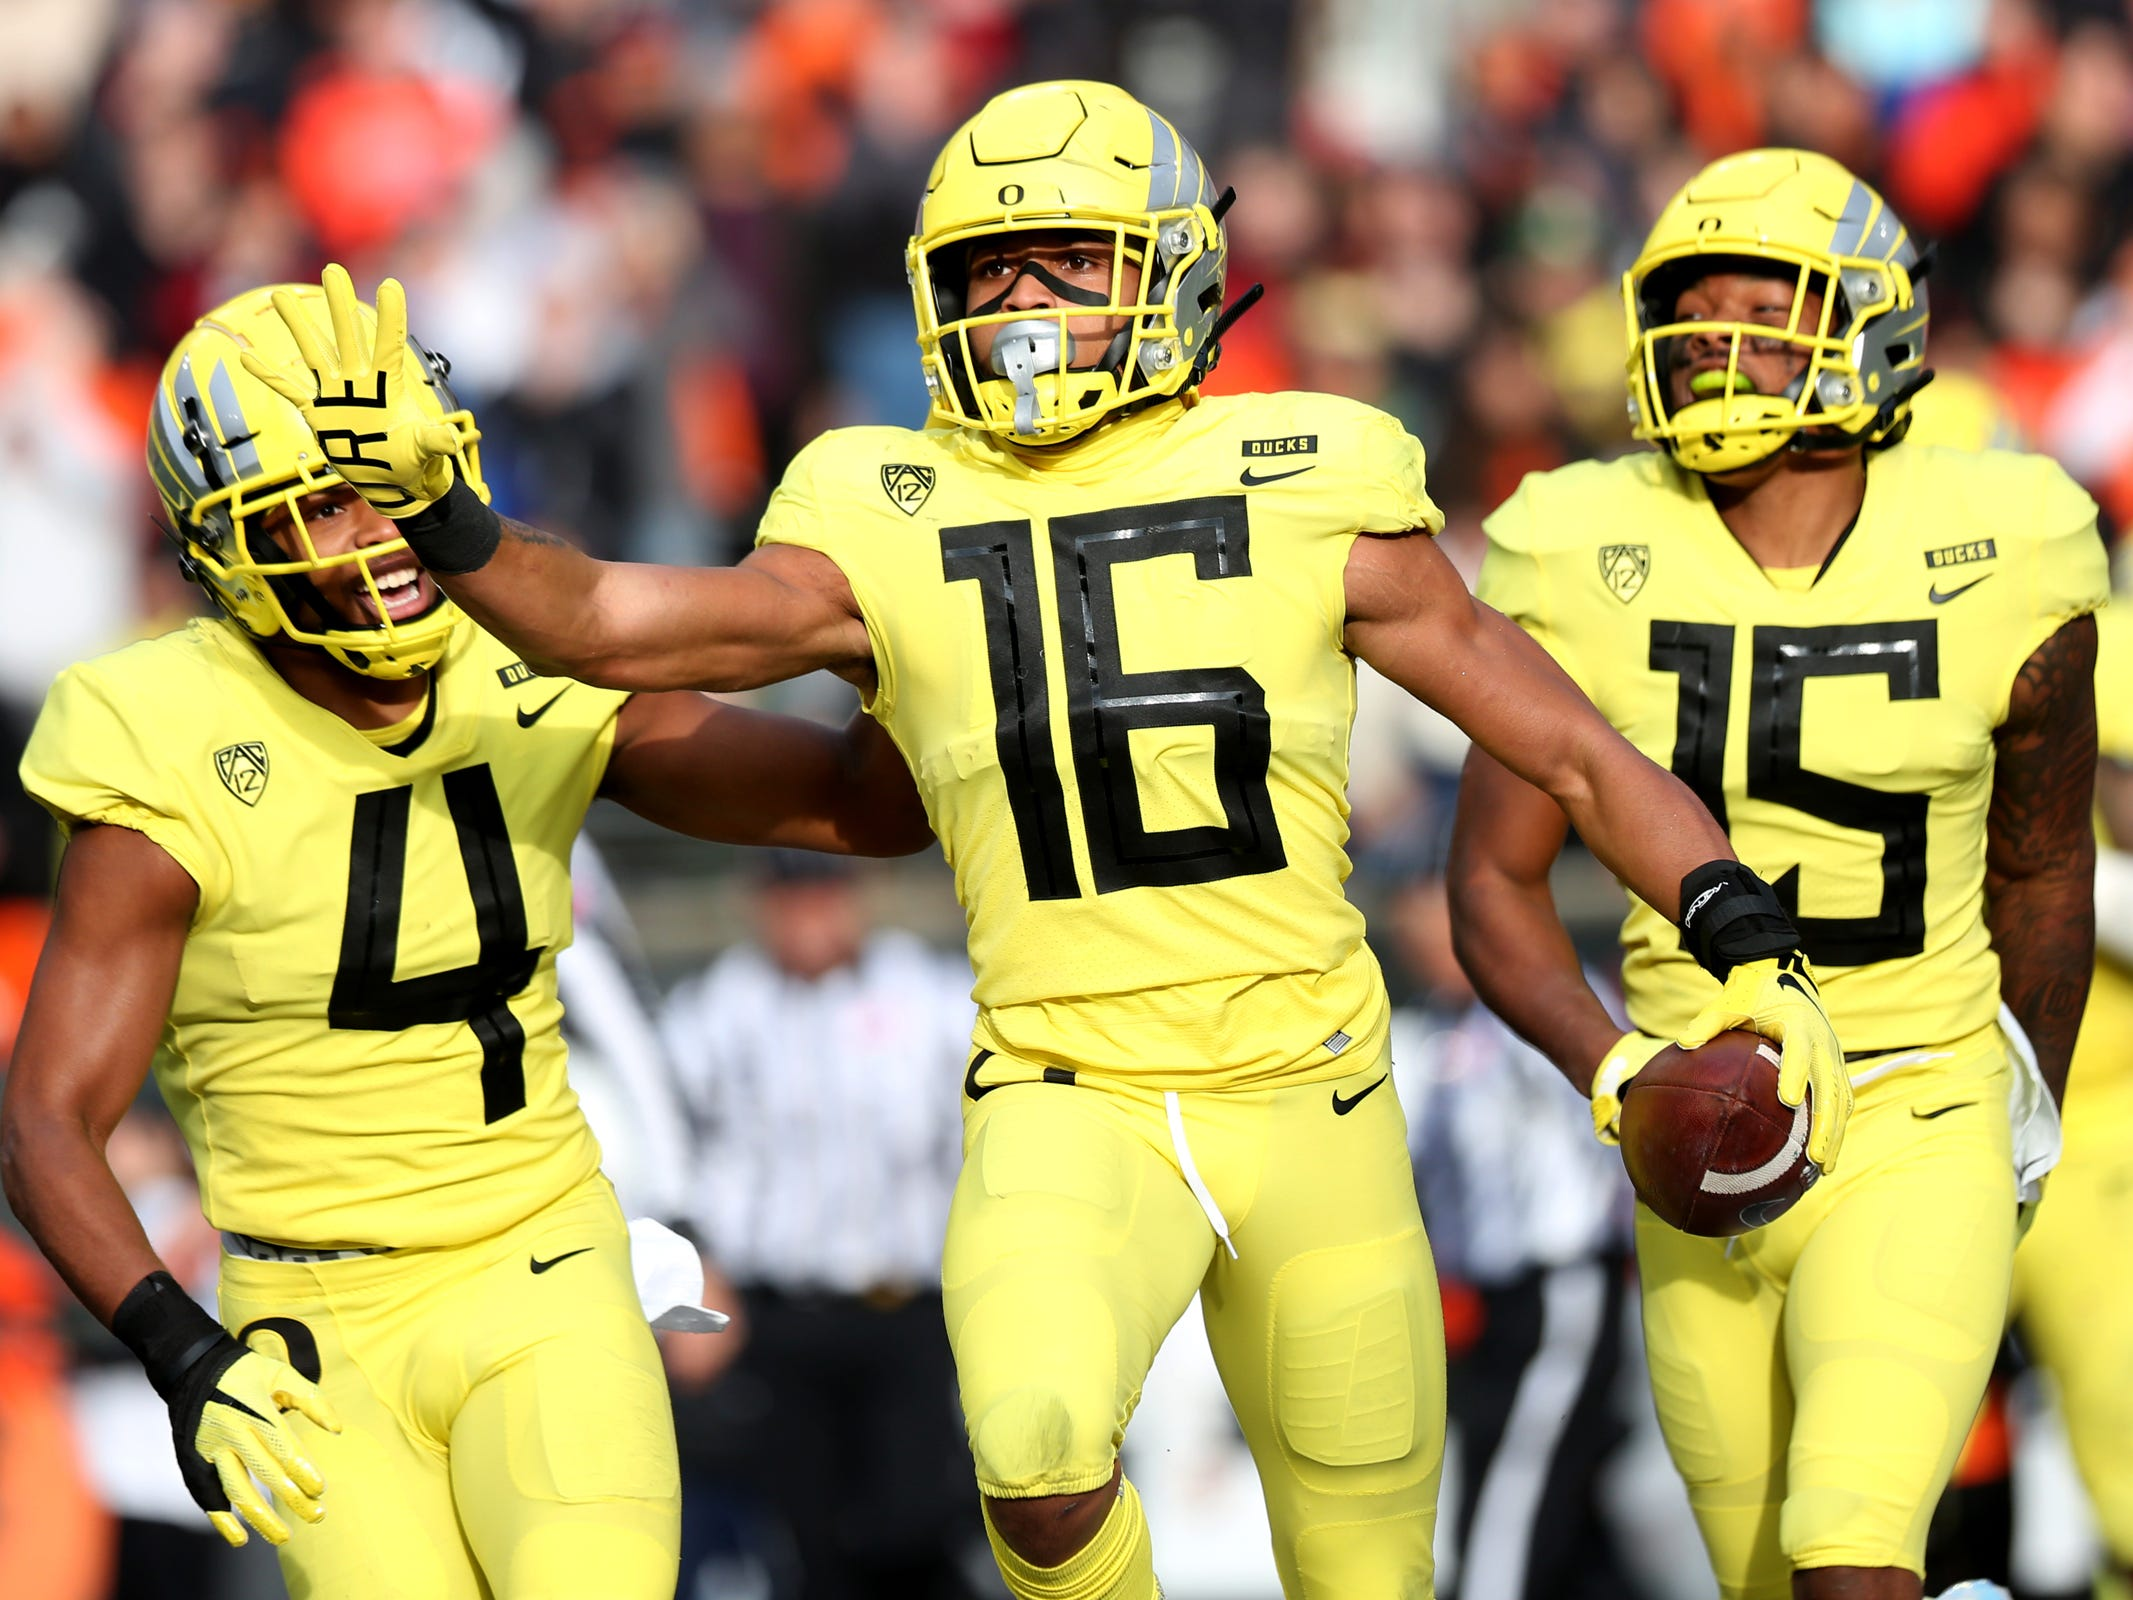 Oregon's Nick Pickett (16), Thomas Graham Jr. (4) and Deommodore Lenoir (15) celebrate an interception by Pickett in the Oregon vs. Oregon State Civil war football game at Oregon State University in Corvallis on Friday, Nov. 23, 2018.